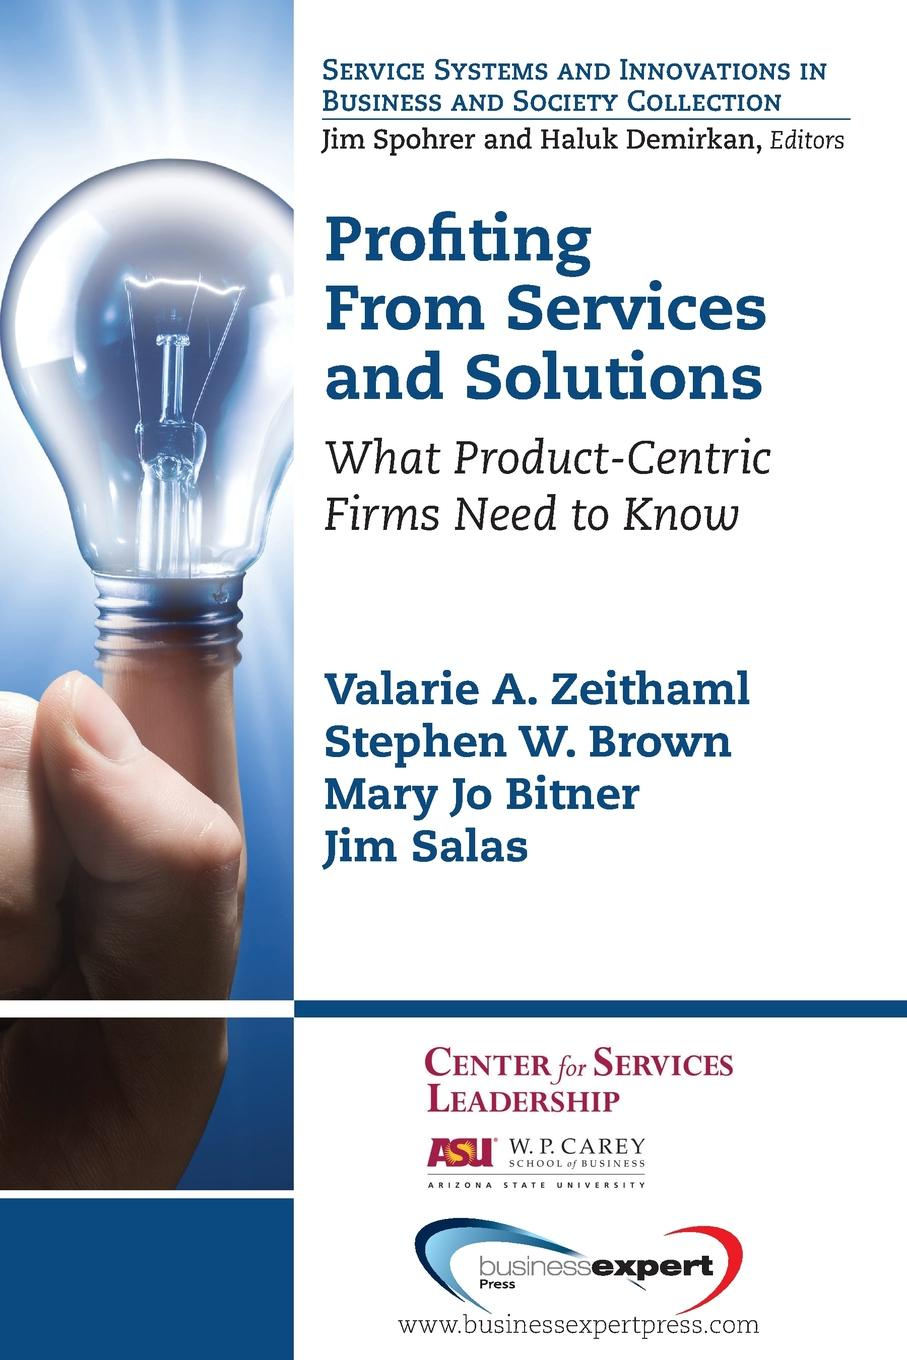 Valarie A. Zeithaml, Stephen W. Brown, Mary Jo Bitner Profiting from Services and Solutions. What Product-Centric Firms Need to Know keshra sangwal nucleation and crystal growth metastability of solutions and melts